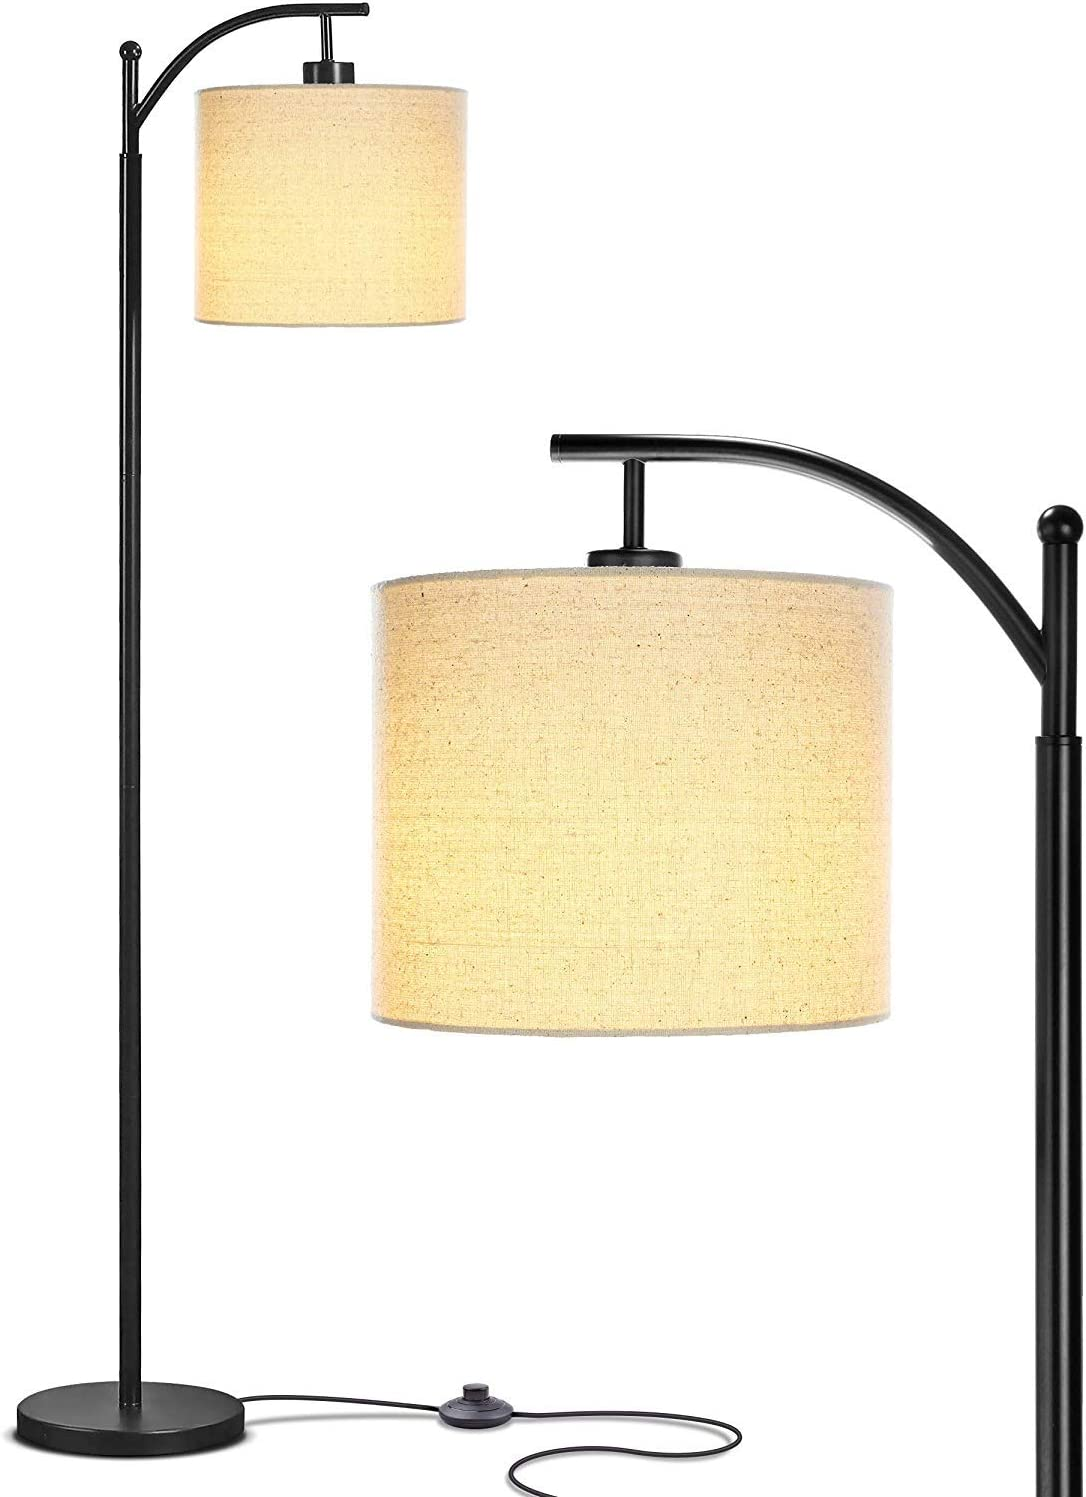 Bedroom Living Room LED Floor Lamp – Standing Industrial Arc Light with Hanging Lamp Shade, Tall Pole Uplight for Office, by Elumaxon